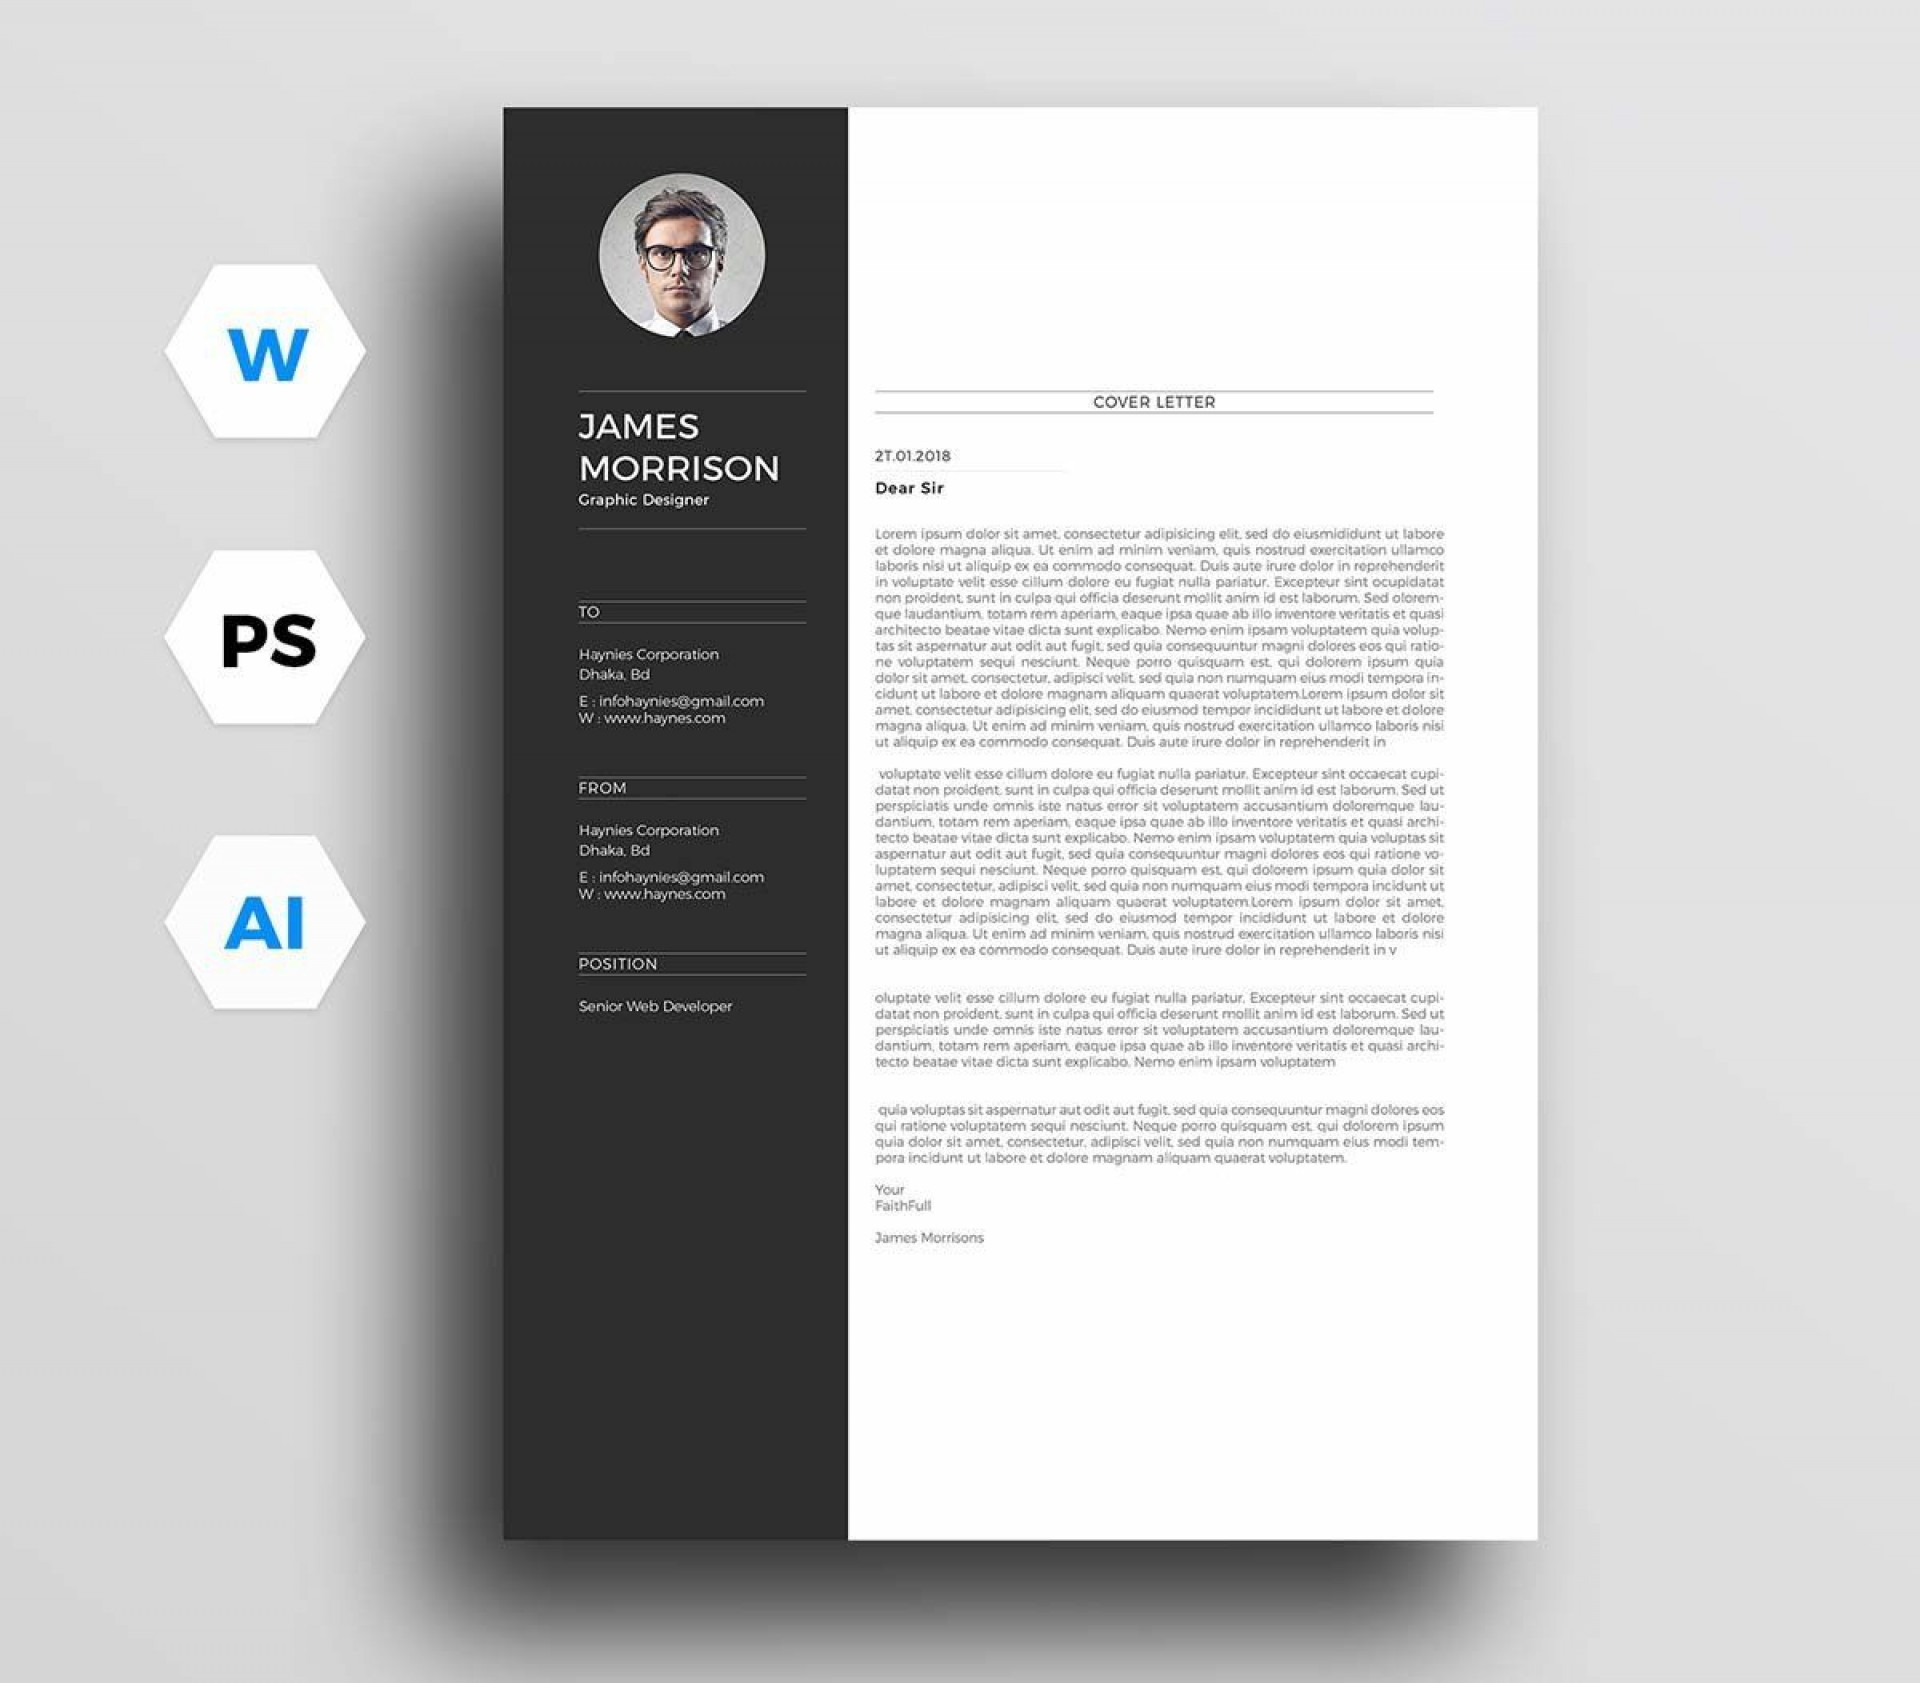 003 Beautiful Microsoft Cover Letter Template 2020 Photo 1920